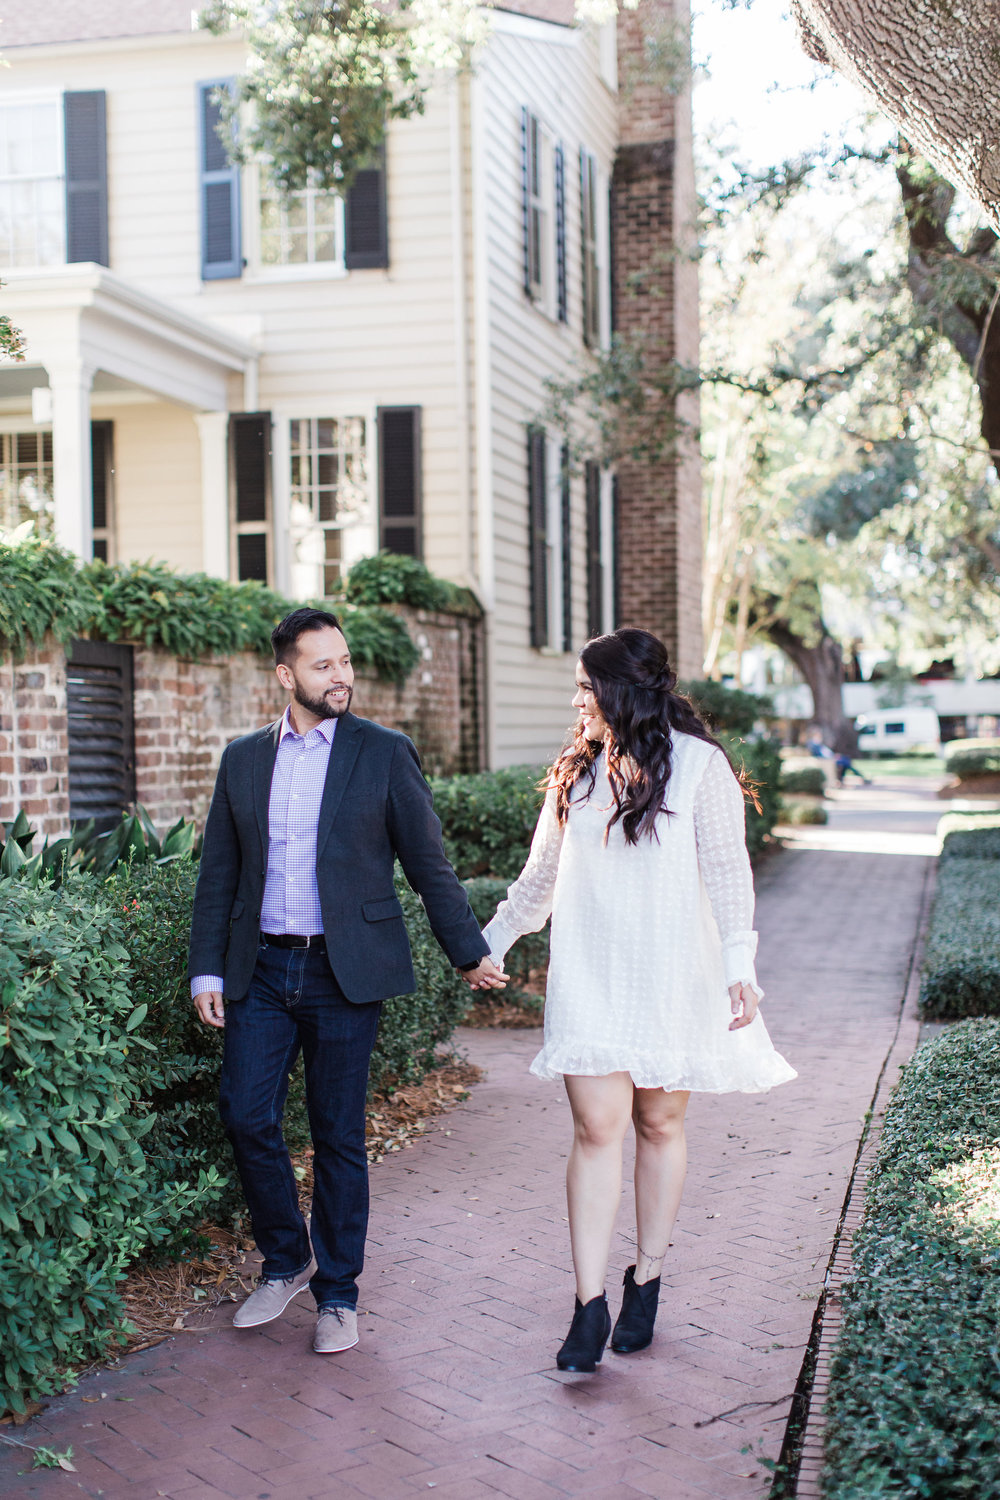 apt-b-photography-Savannah-wedding-photographer-savannah-engagement-photographer-historic-savannah-engagement-savannah-weddings-hilton-head-wedding-photographer-hilton-head-engagement-12.jpg